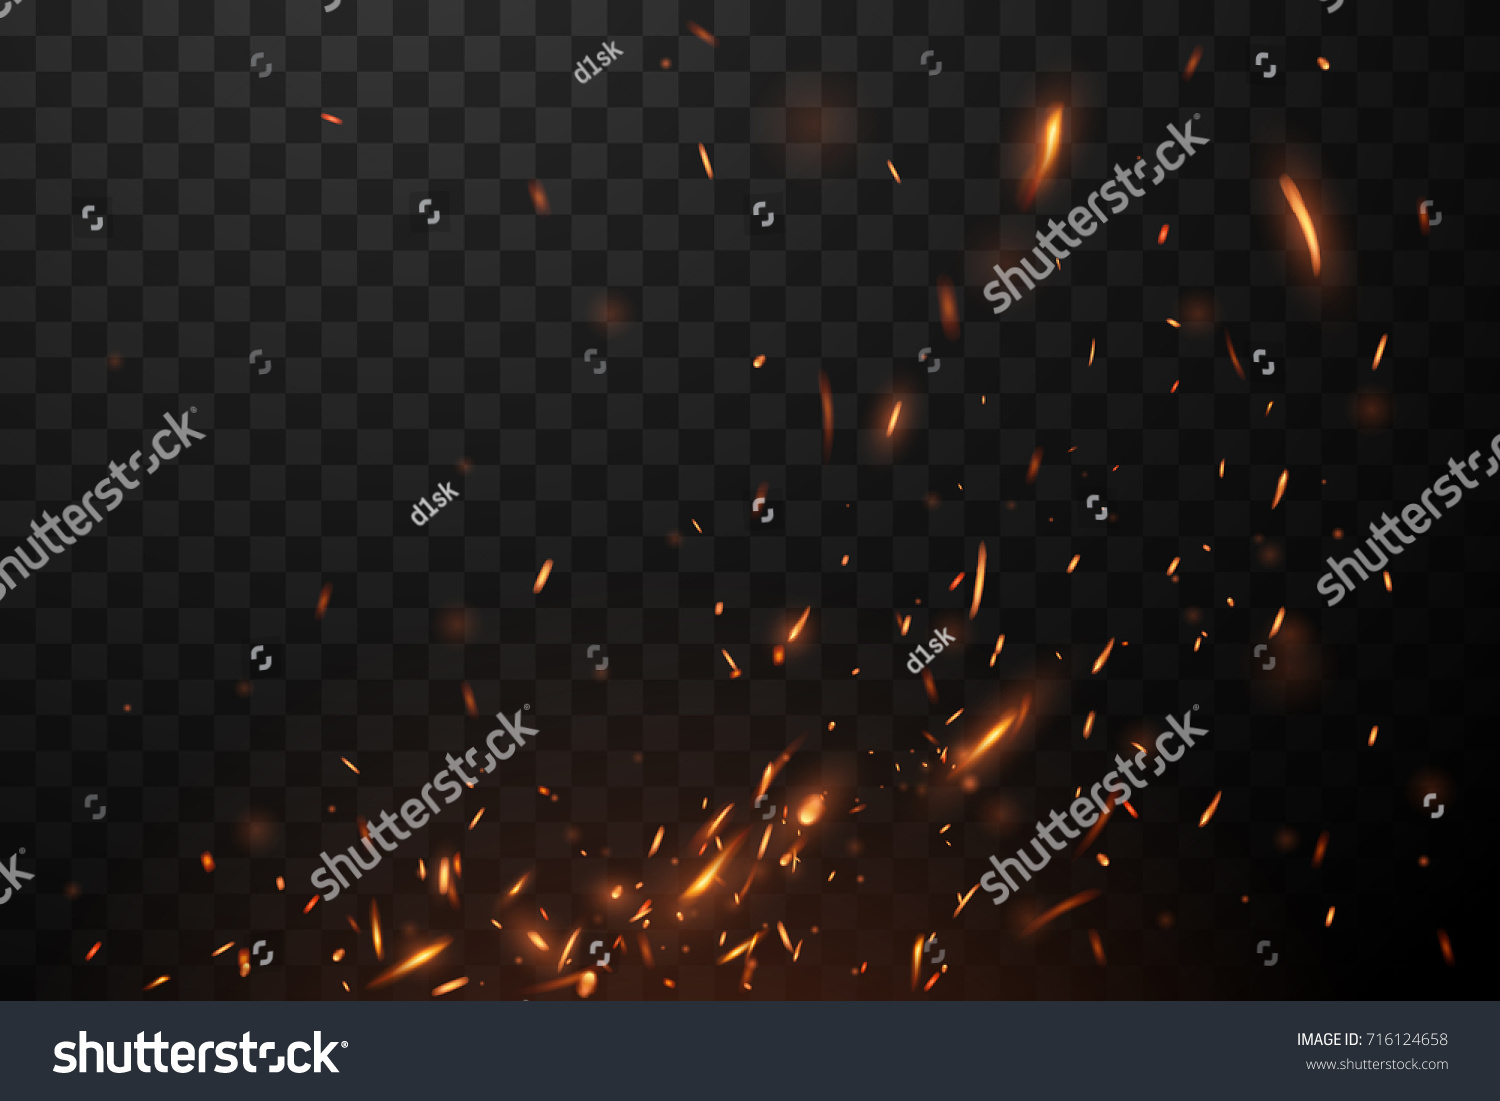 Fire Flying Sparks Spark Vector Images Royalty Free Stock Photos